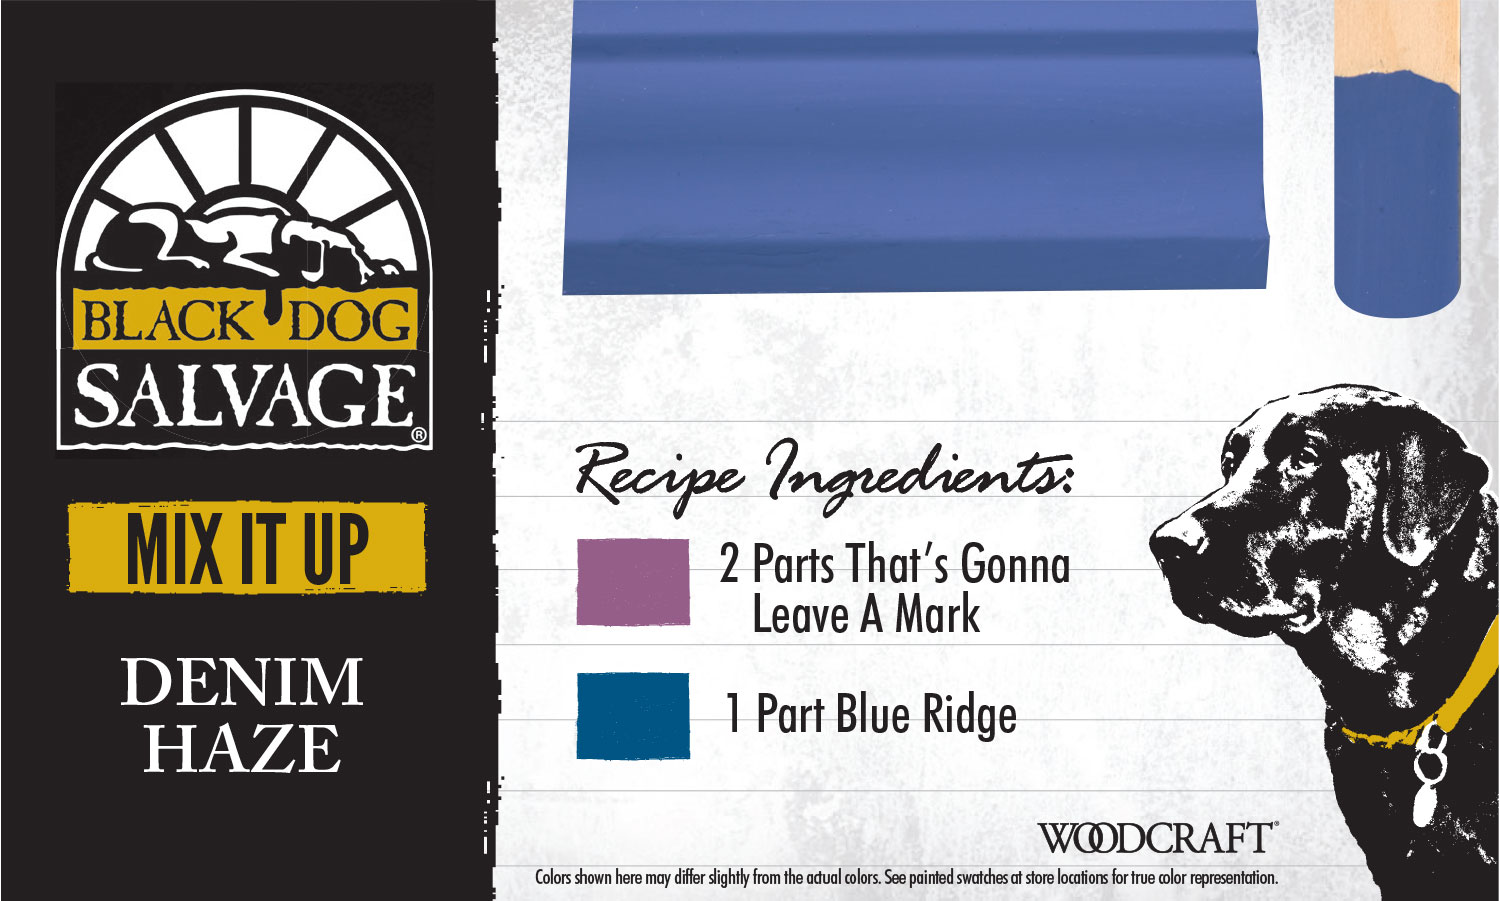 """""""Denim Haze"""" is made from2 Parts """"That's Gonna Leave A Mark"""" and 1 Part """"Blue Ridge"""""""